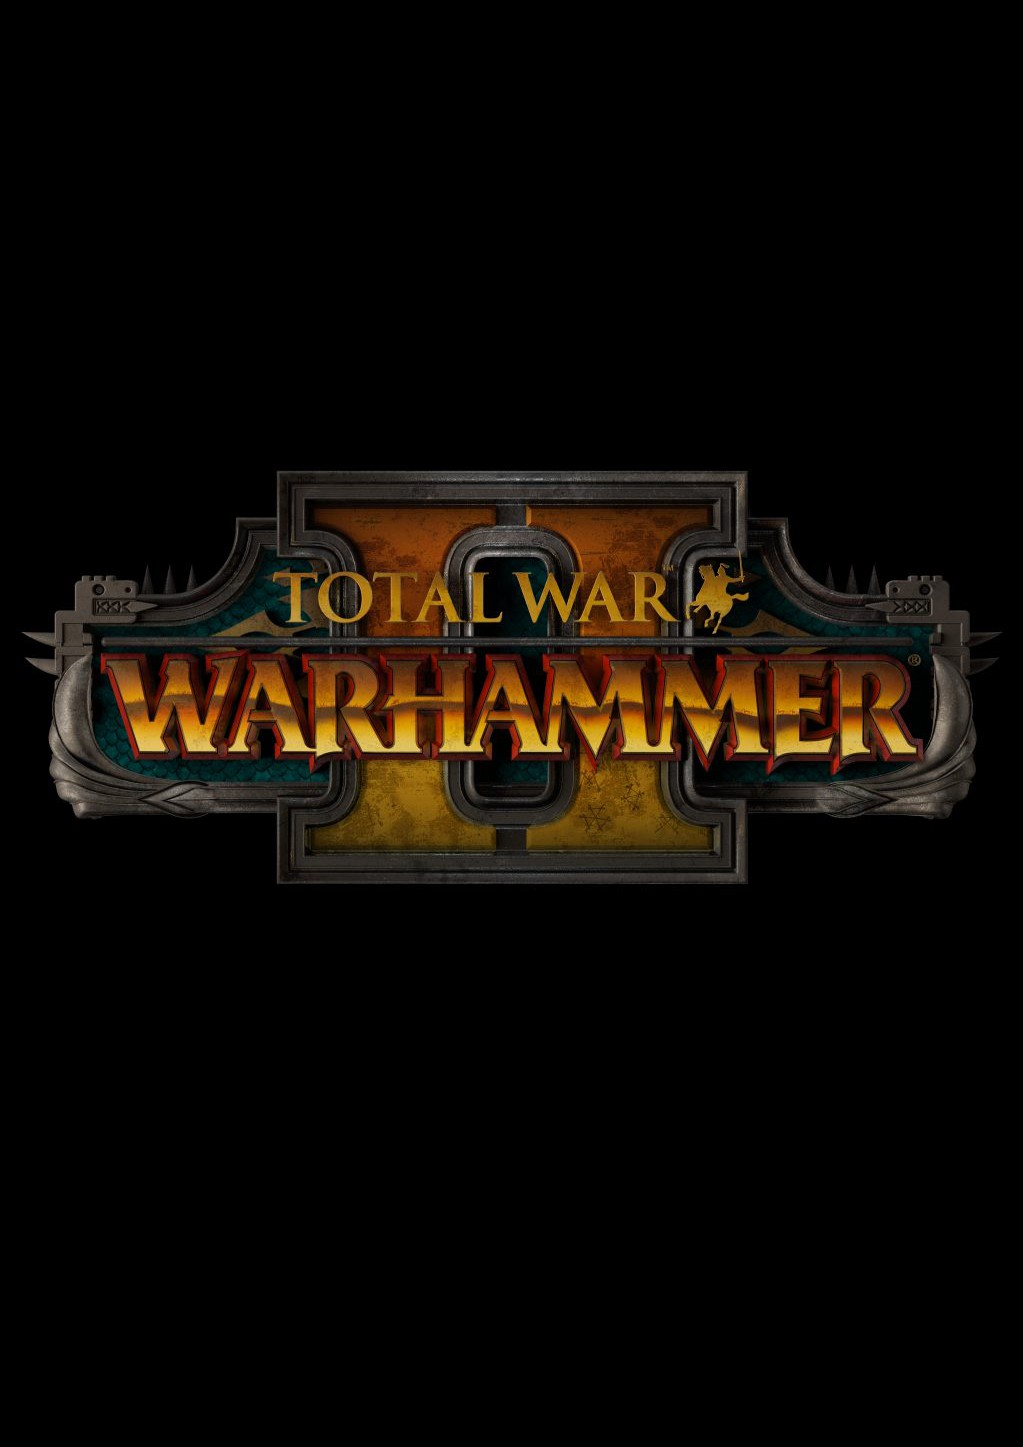 Total War WARHAMMER 2 Steam Key Gloabl